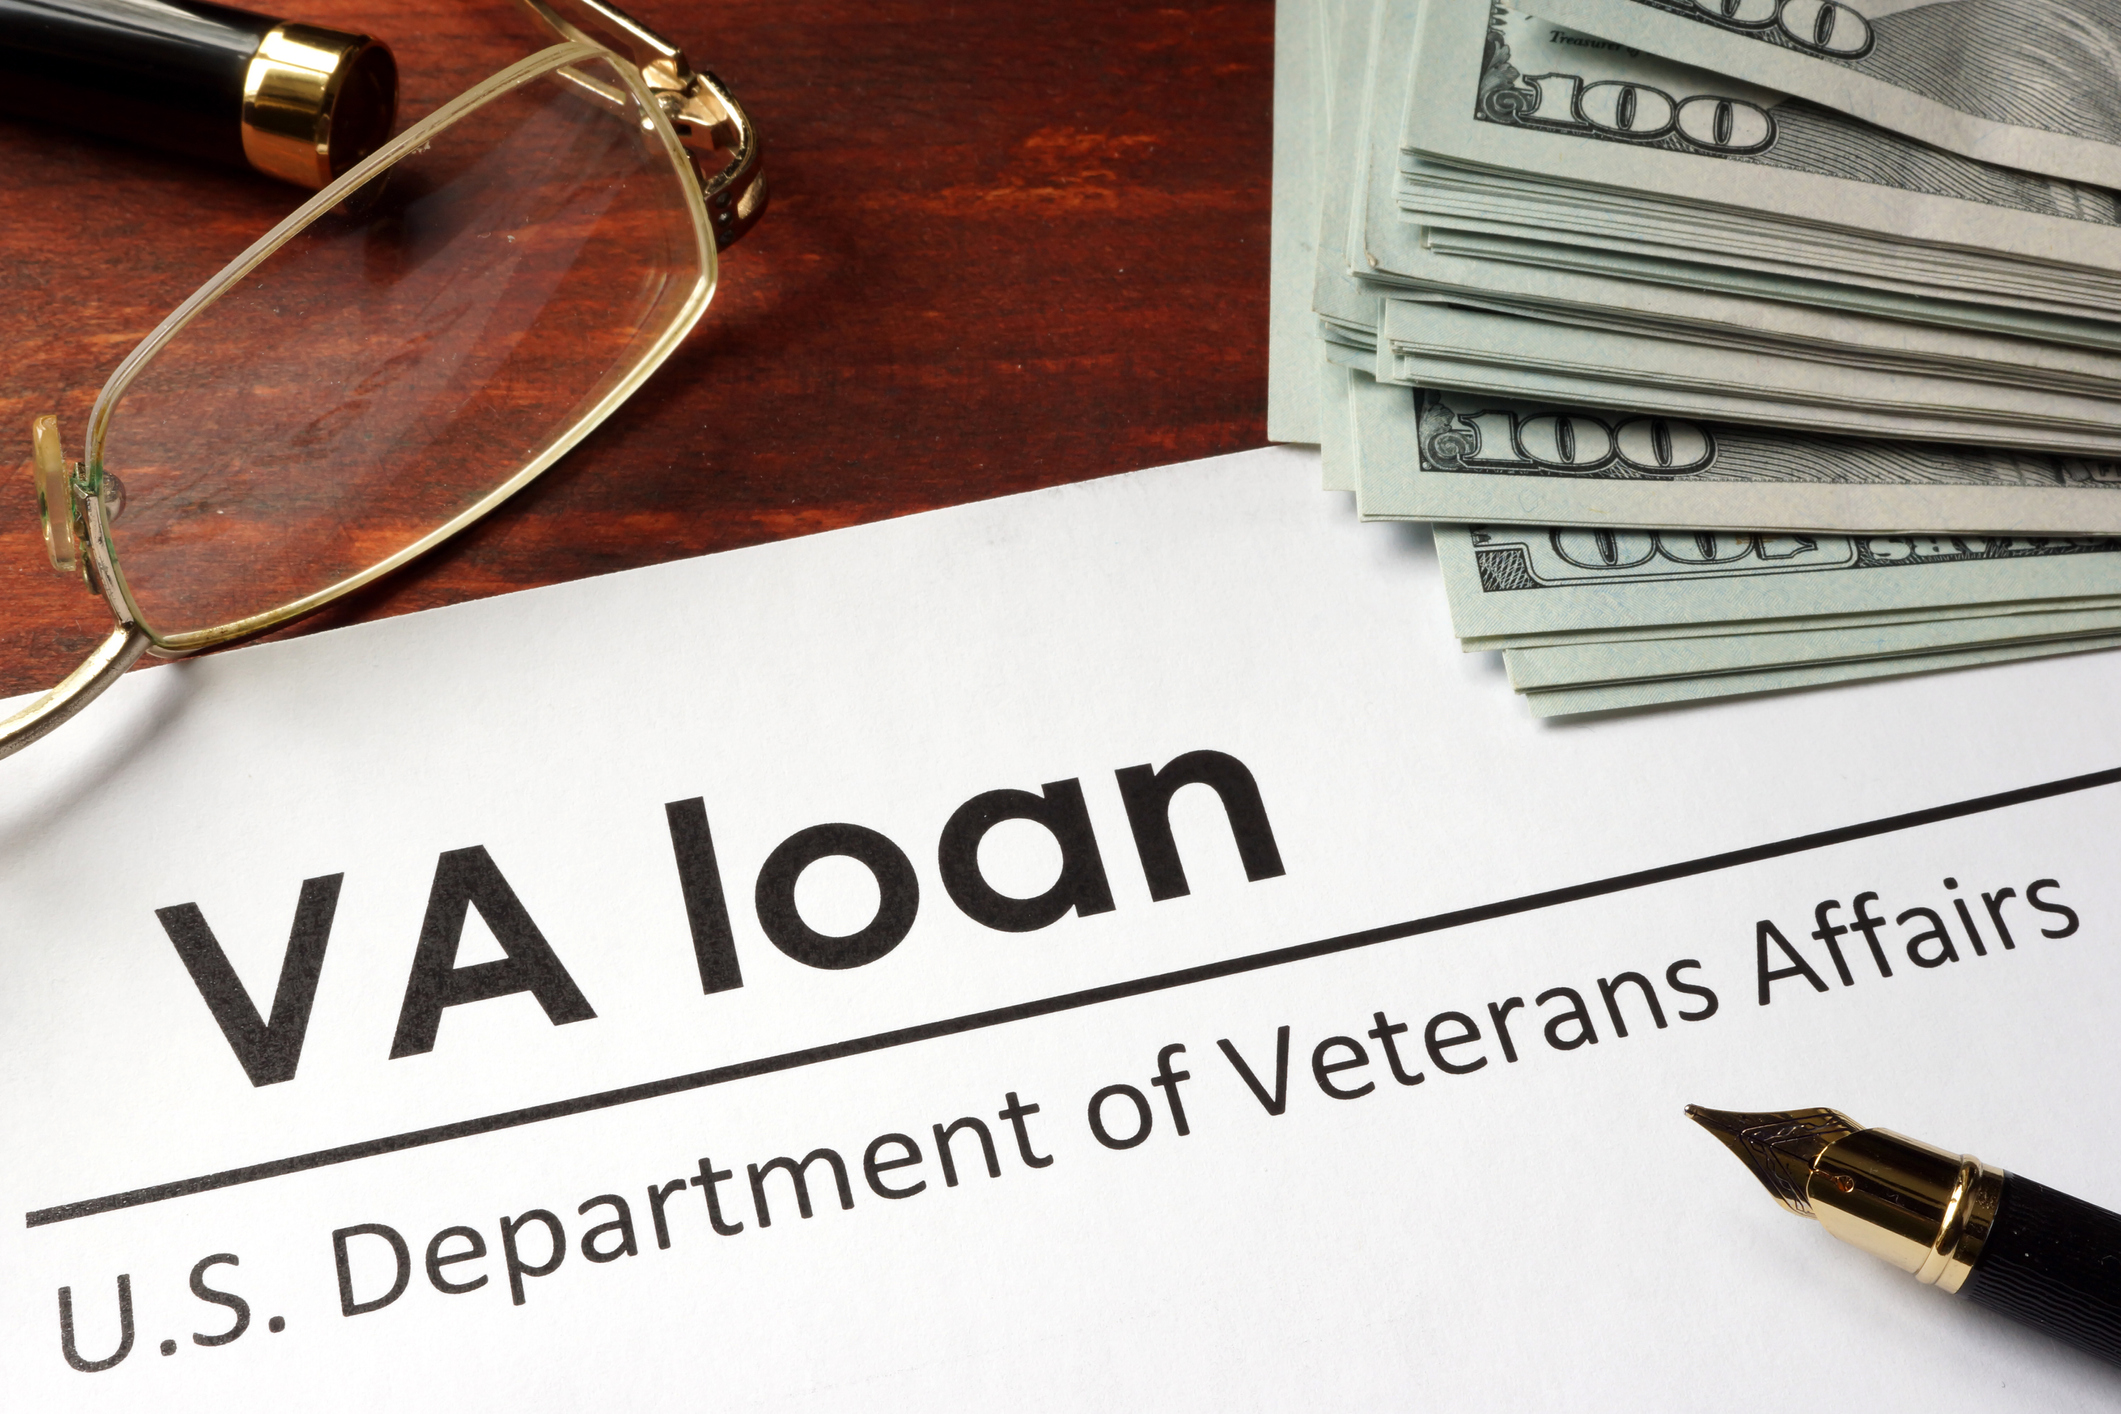 Cash and VA loan form from the U.S. Department of Veterans Affairs